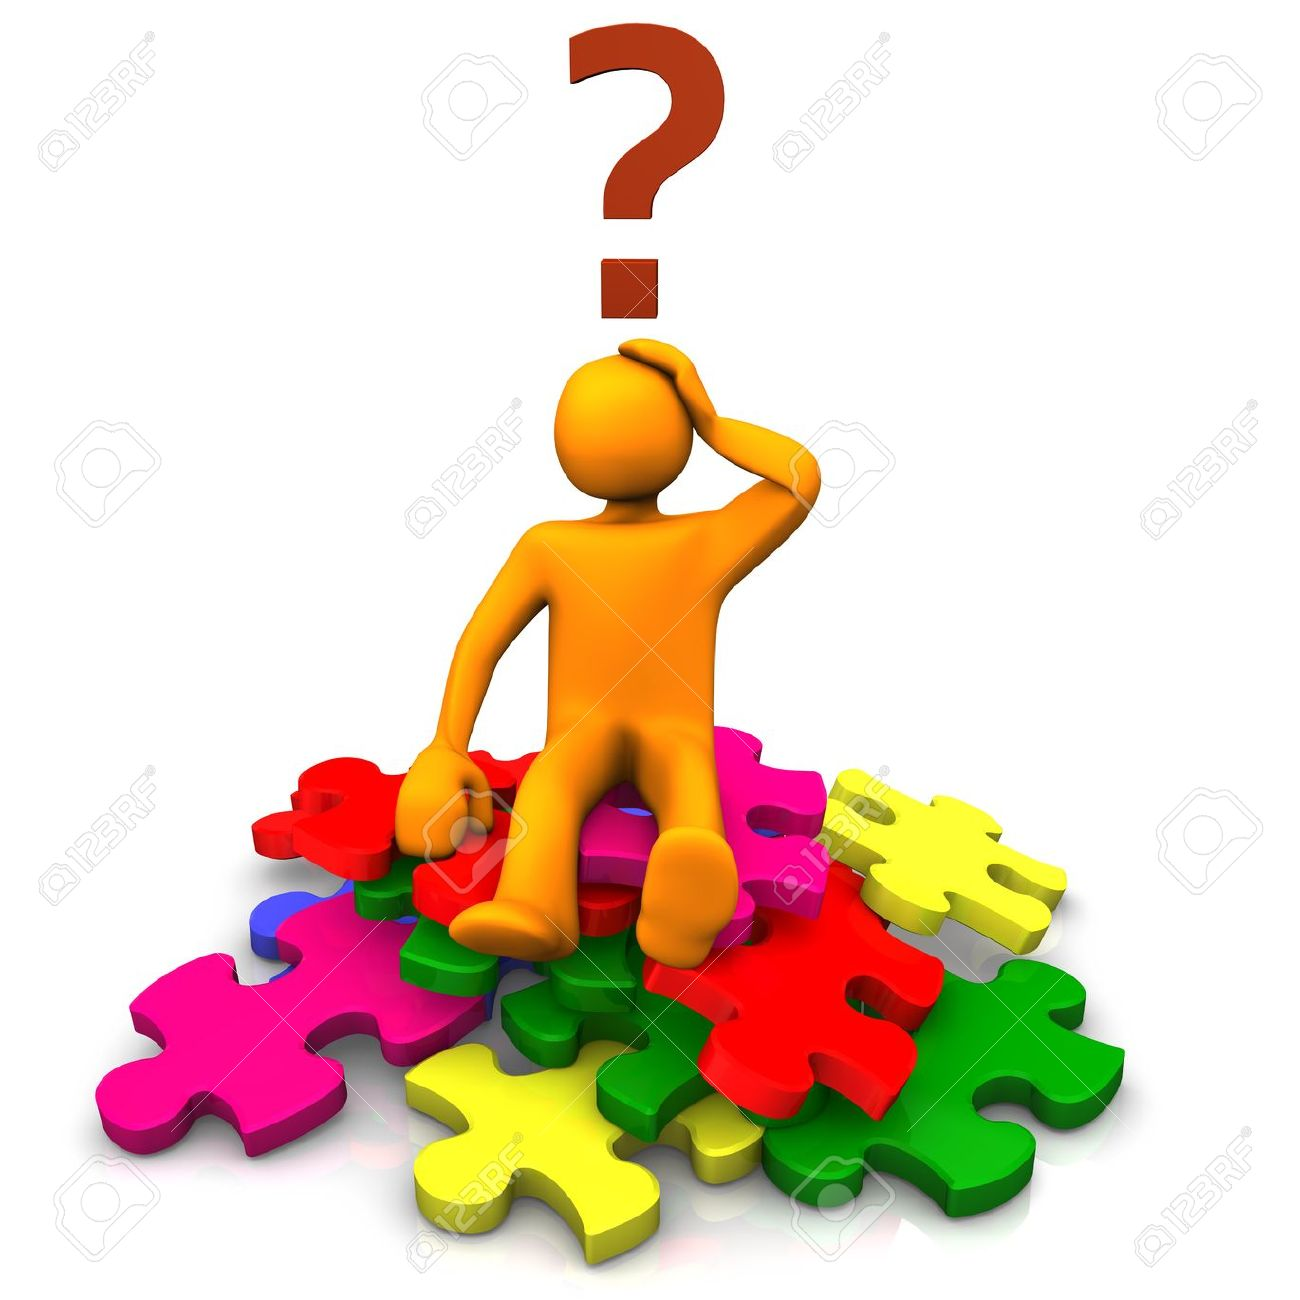 Orange cartoon on the multicolored puzzles an big question mark - 13739021